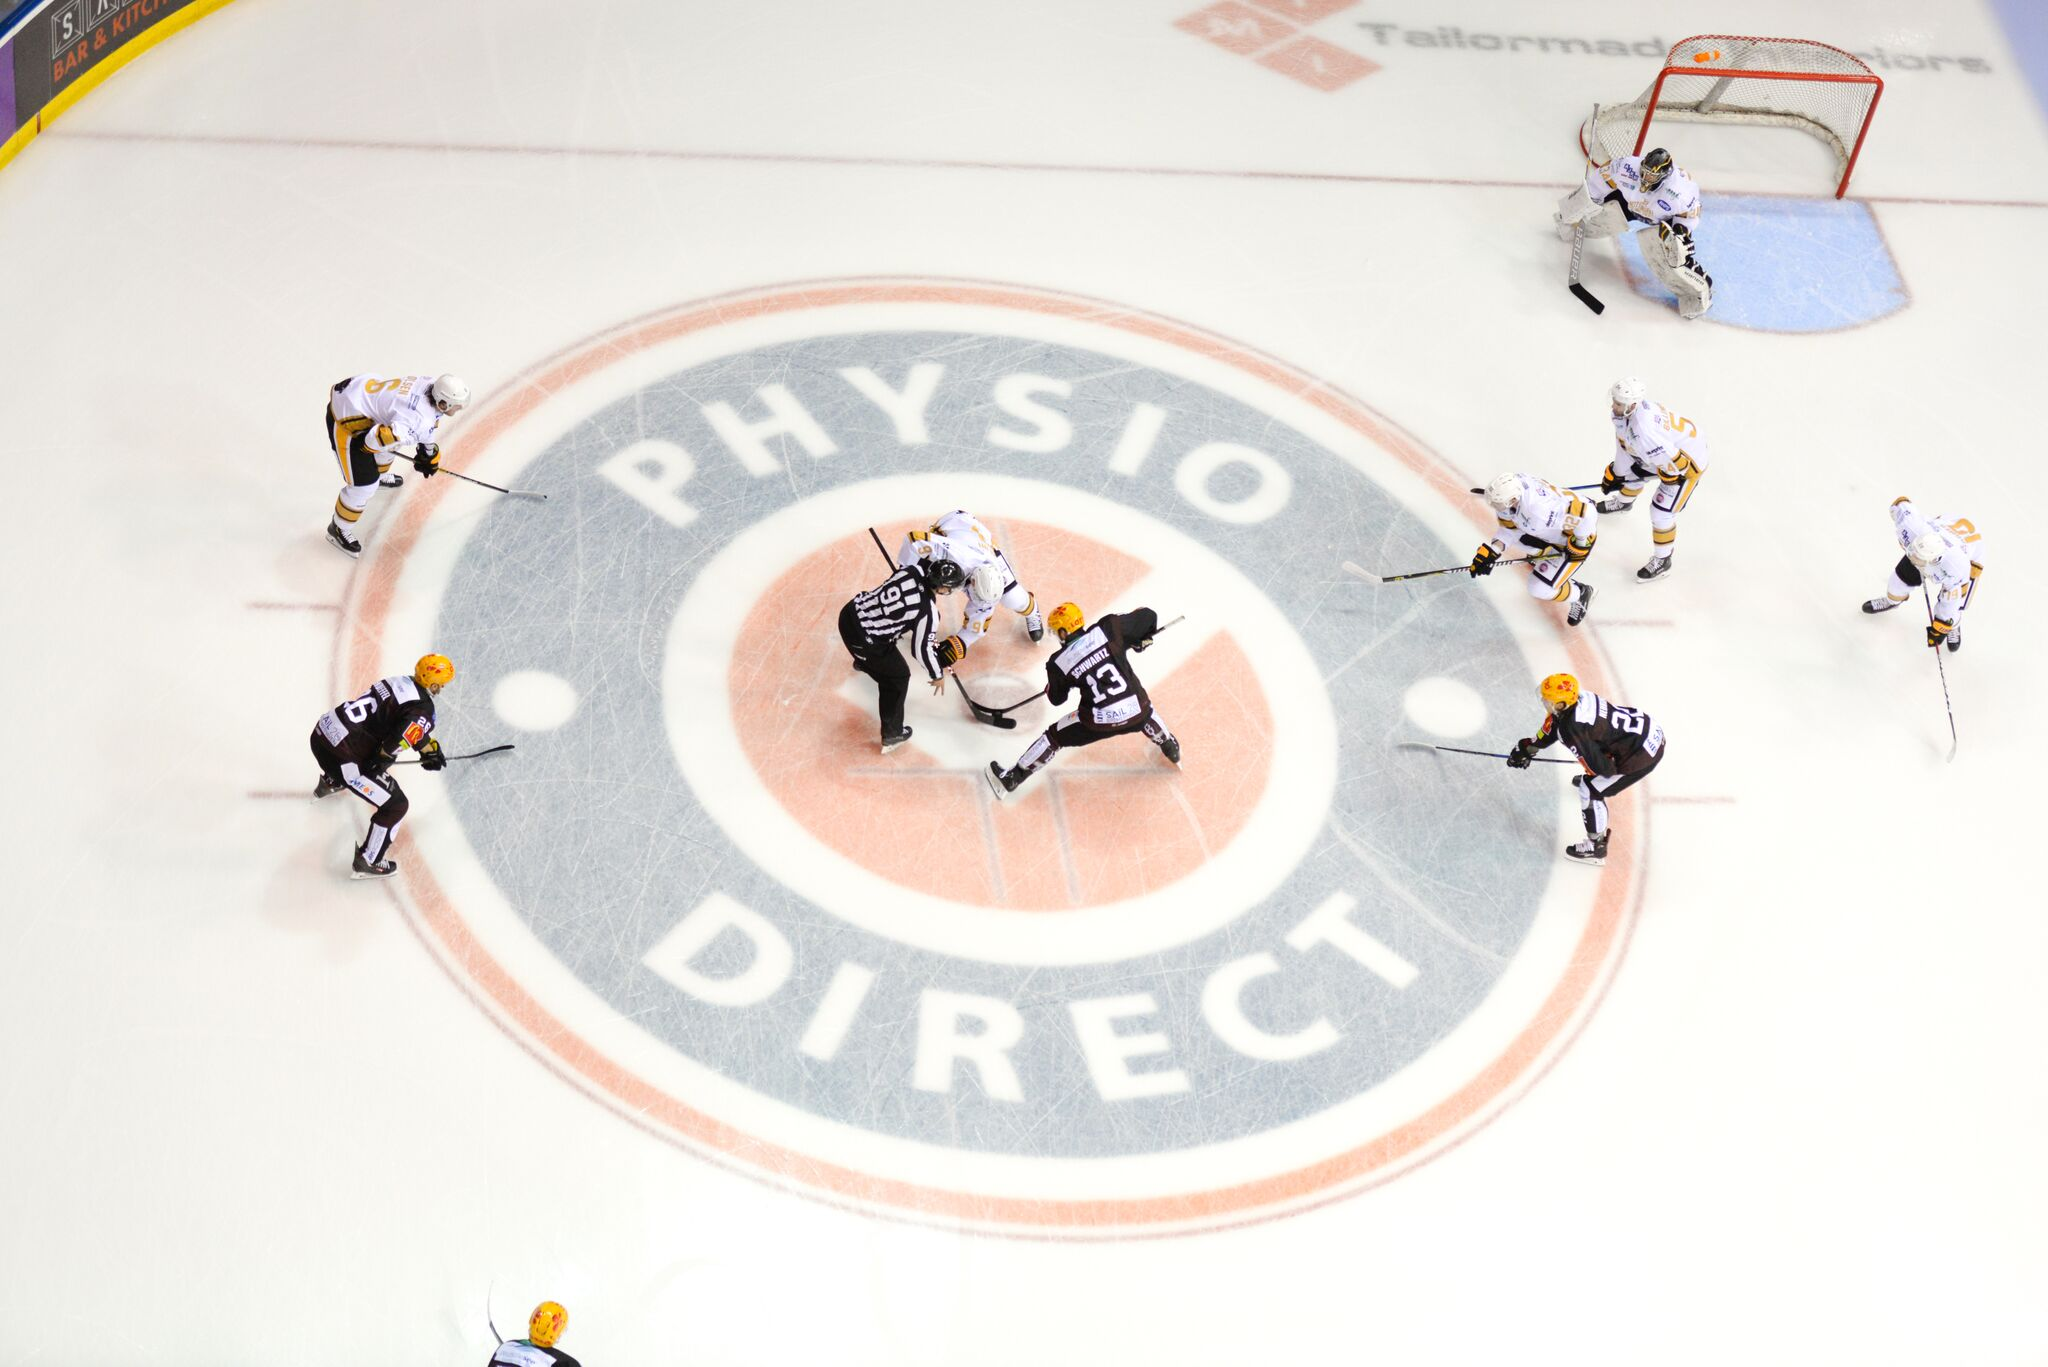 Nottingham Panthers ice hockey players standing on the PhysioDirect logo to show the PhysioDirect partnership with the Nottingham Panthers